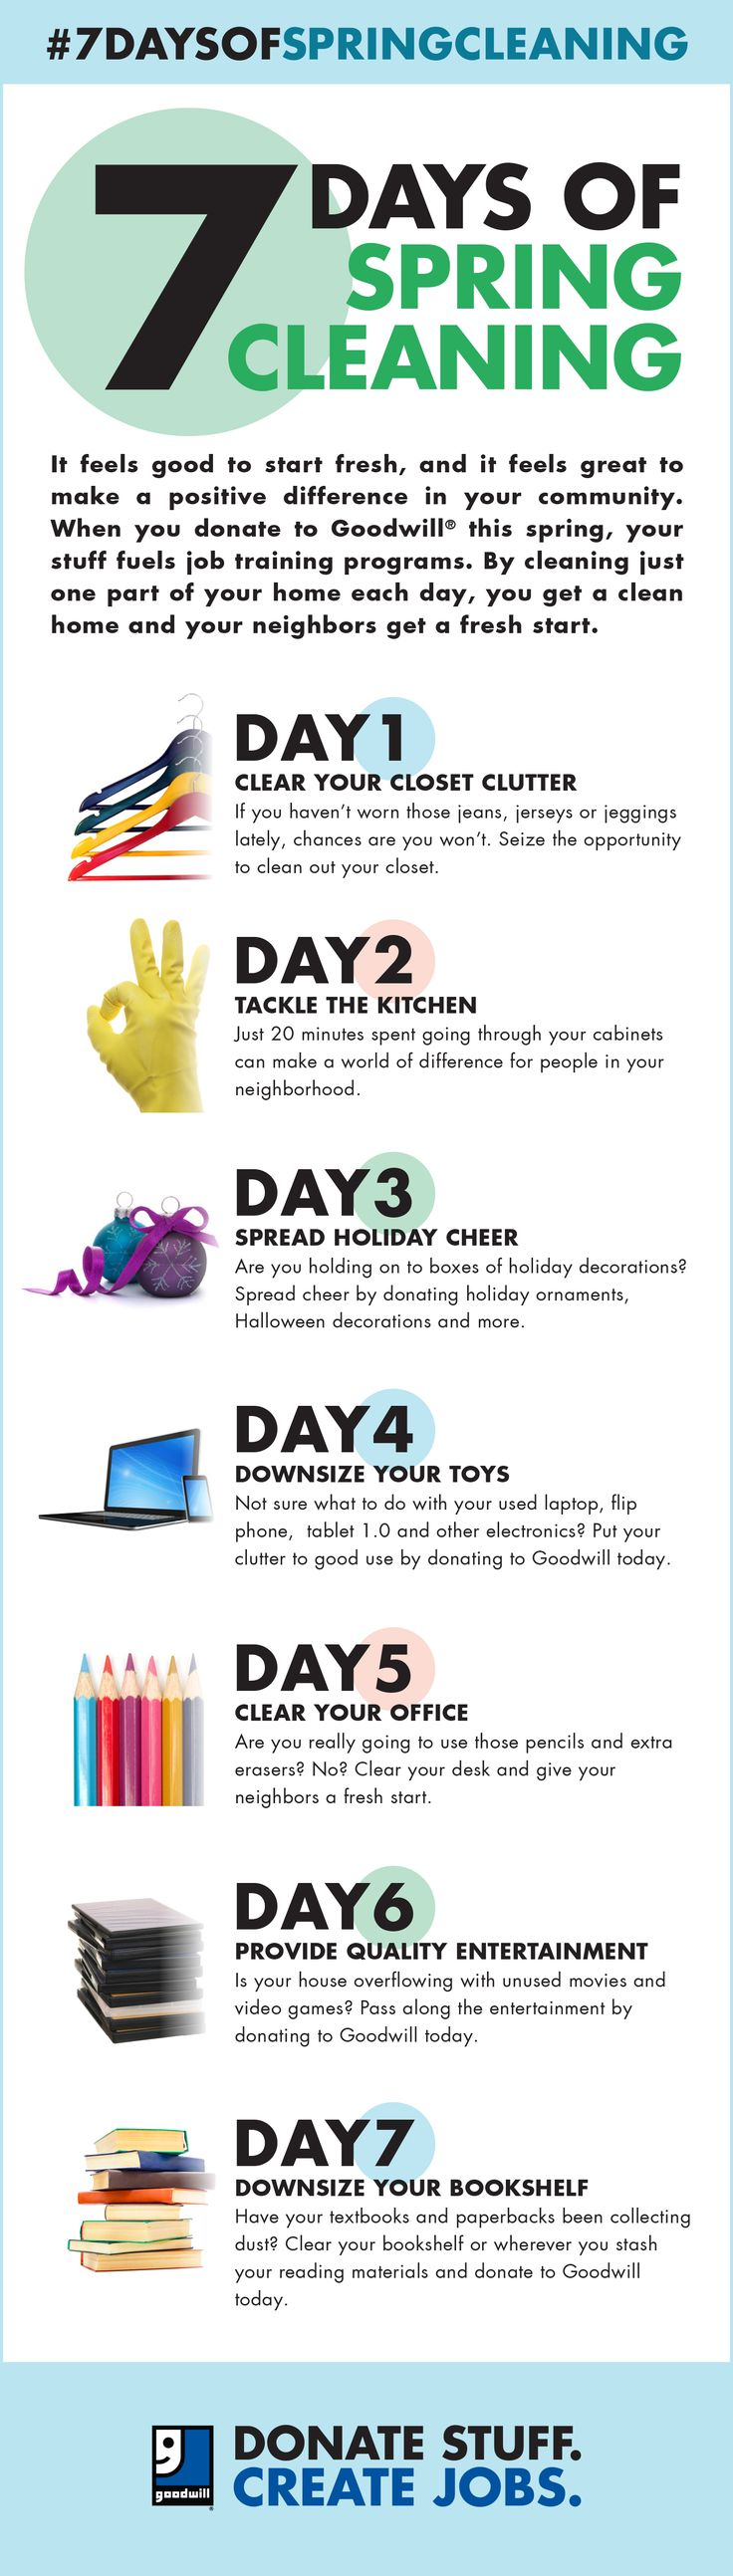 Wondering where to begin when it comes to spring cleaning? This #7DaysofSpringCleaning infographic helps you take it one day at a time.